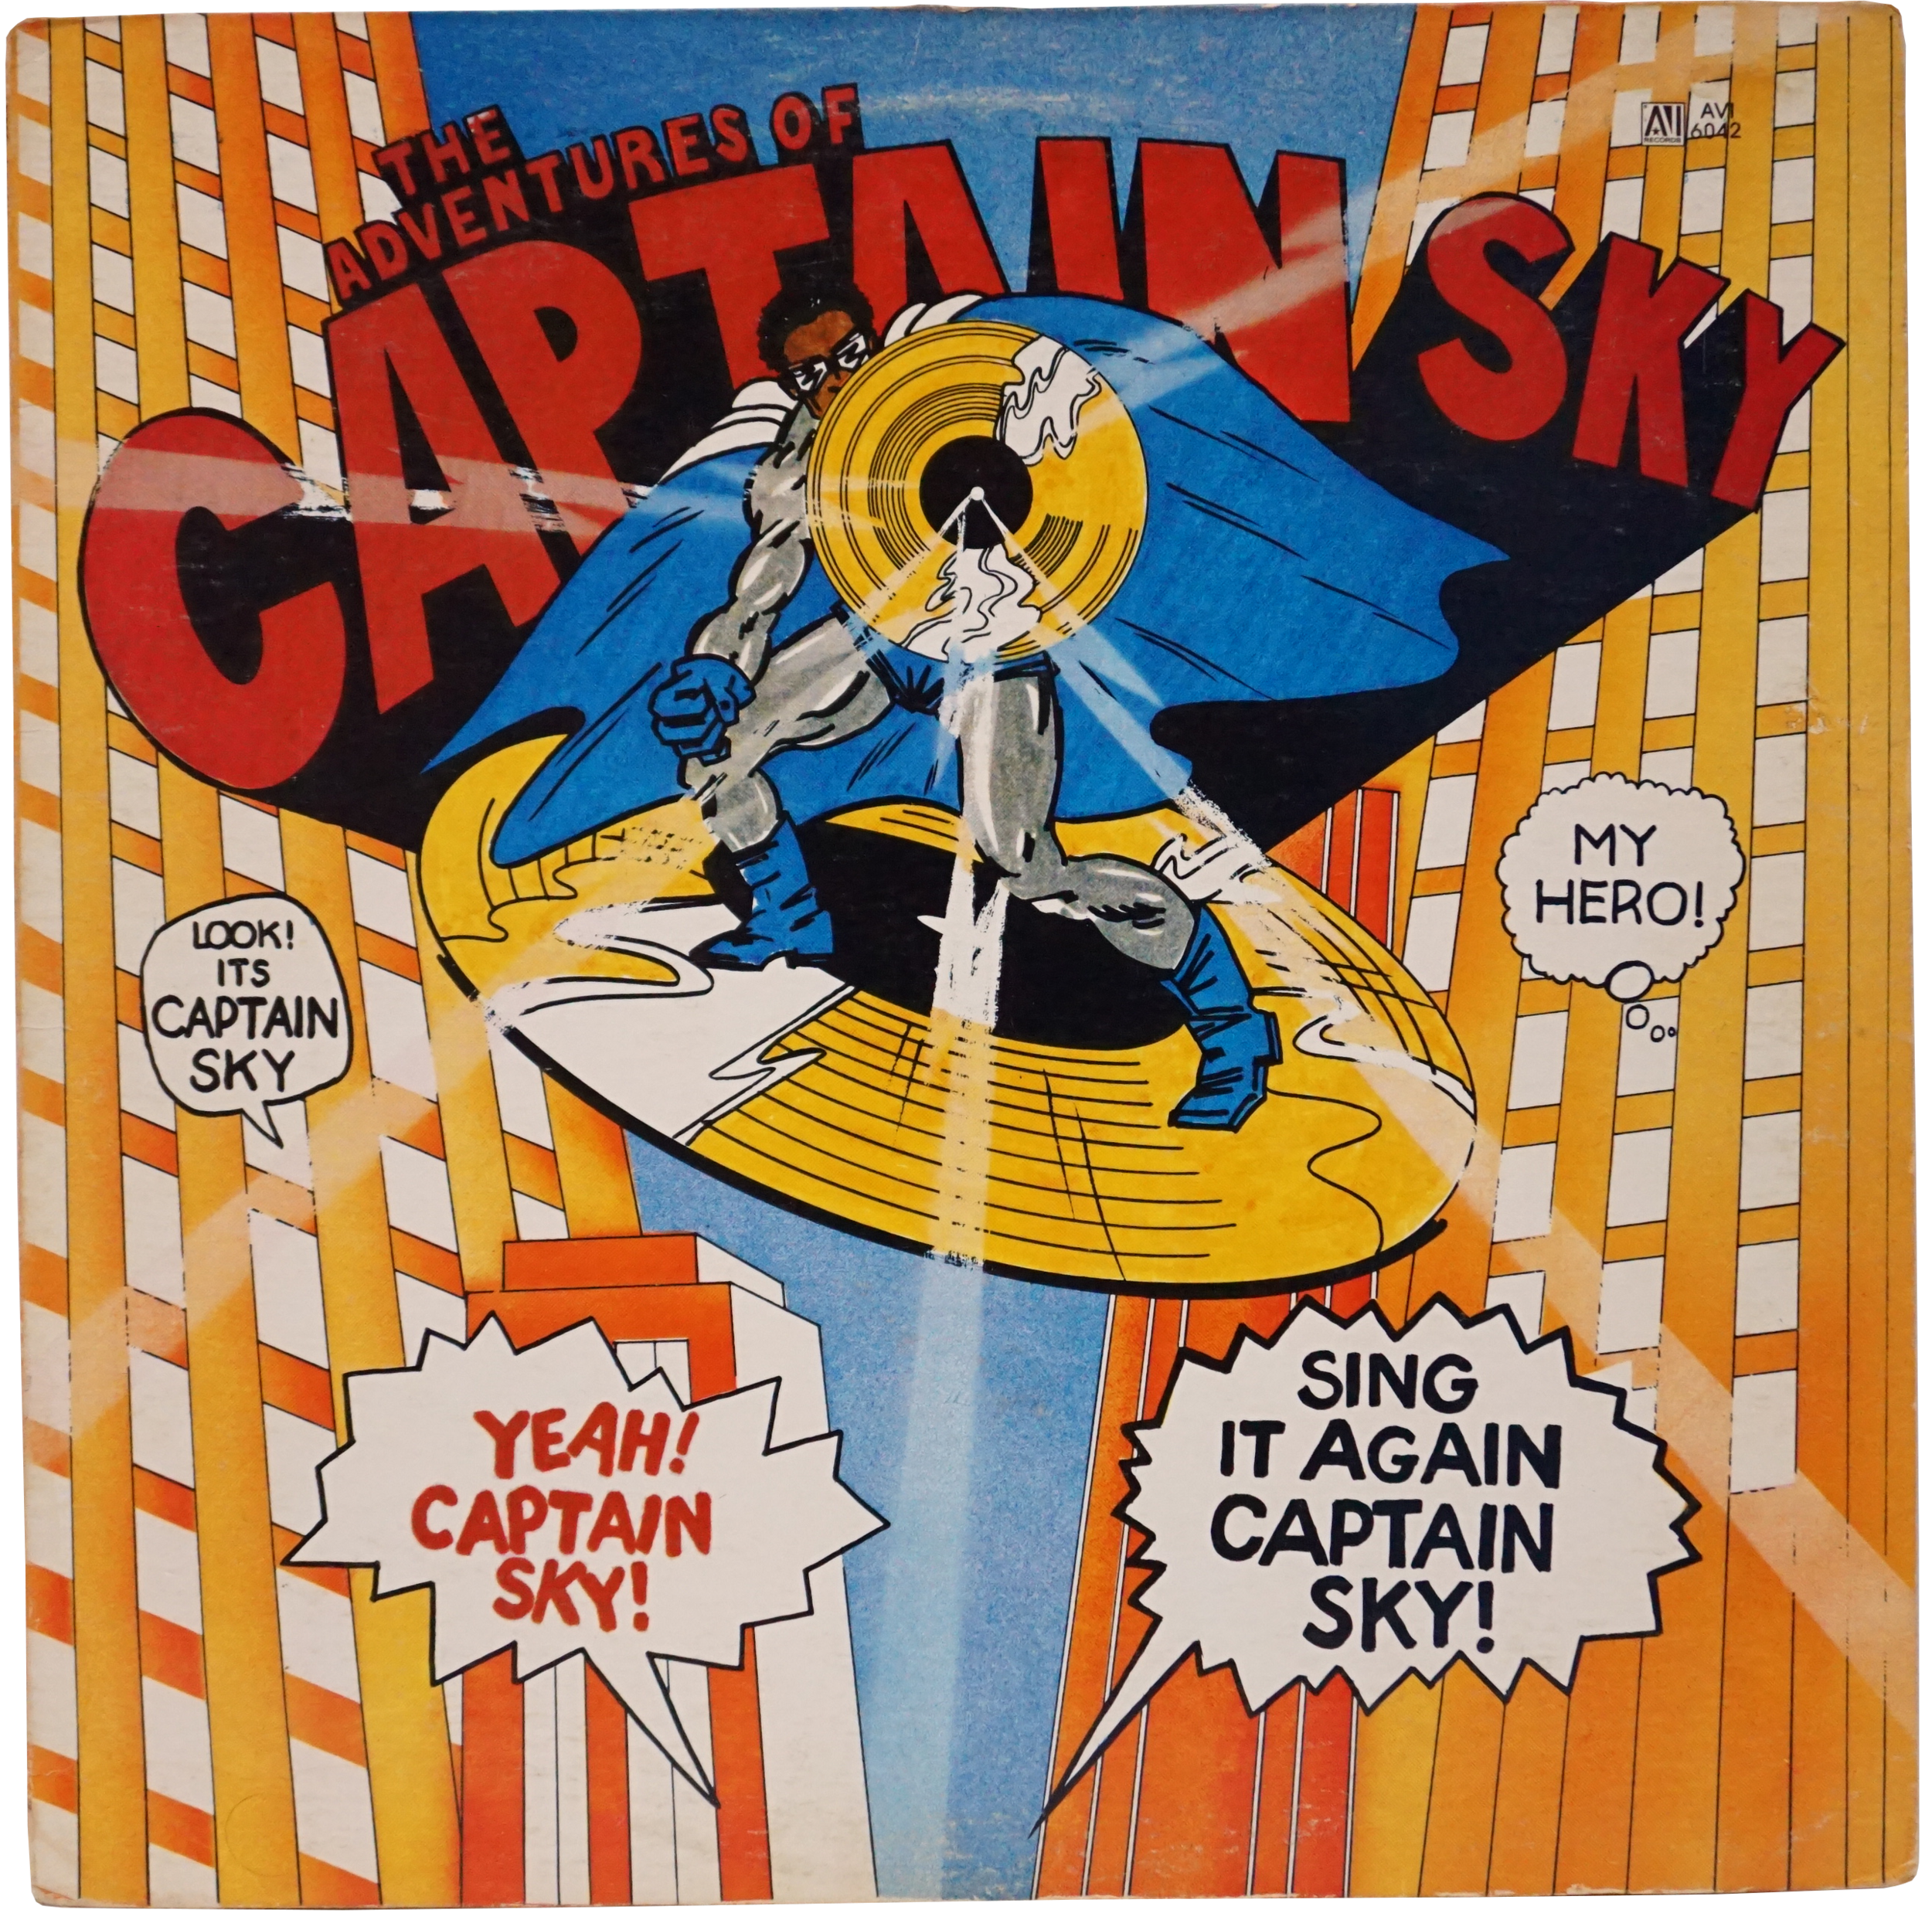 WLWLTDOO-1978-LP-CAPTAIN_SKY-THE_ADVENTURES_OF_CAPTAIN_SKY-FRONT-AVI6042.png